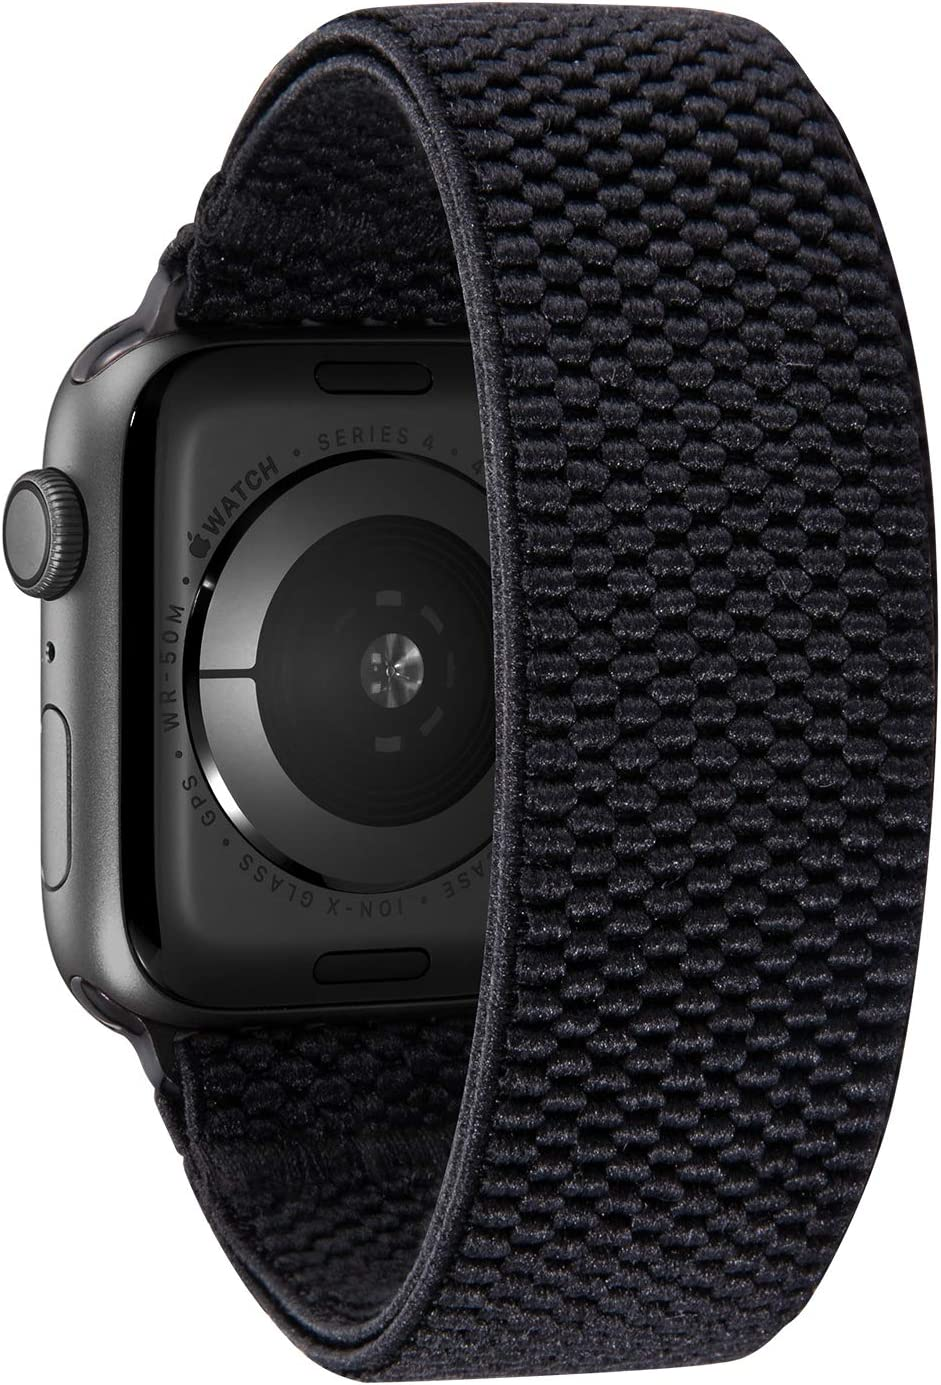 Nomchi Double Layer Loop Elastic Compatible/Replacement Band for Apple Watch 38mm 40mm 42mm 44mm (Patterned Black, Wrist Size: 5.5-5.9 inch (S),42mm/44mm)